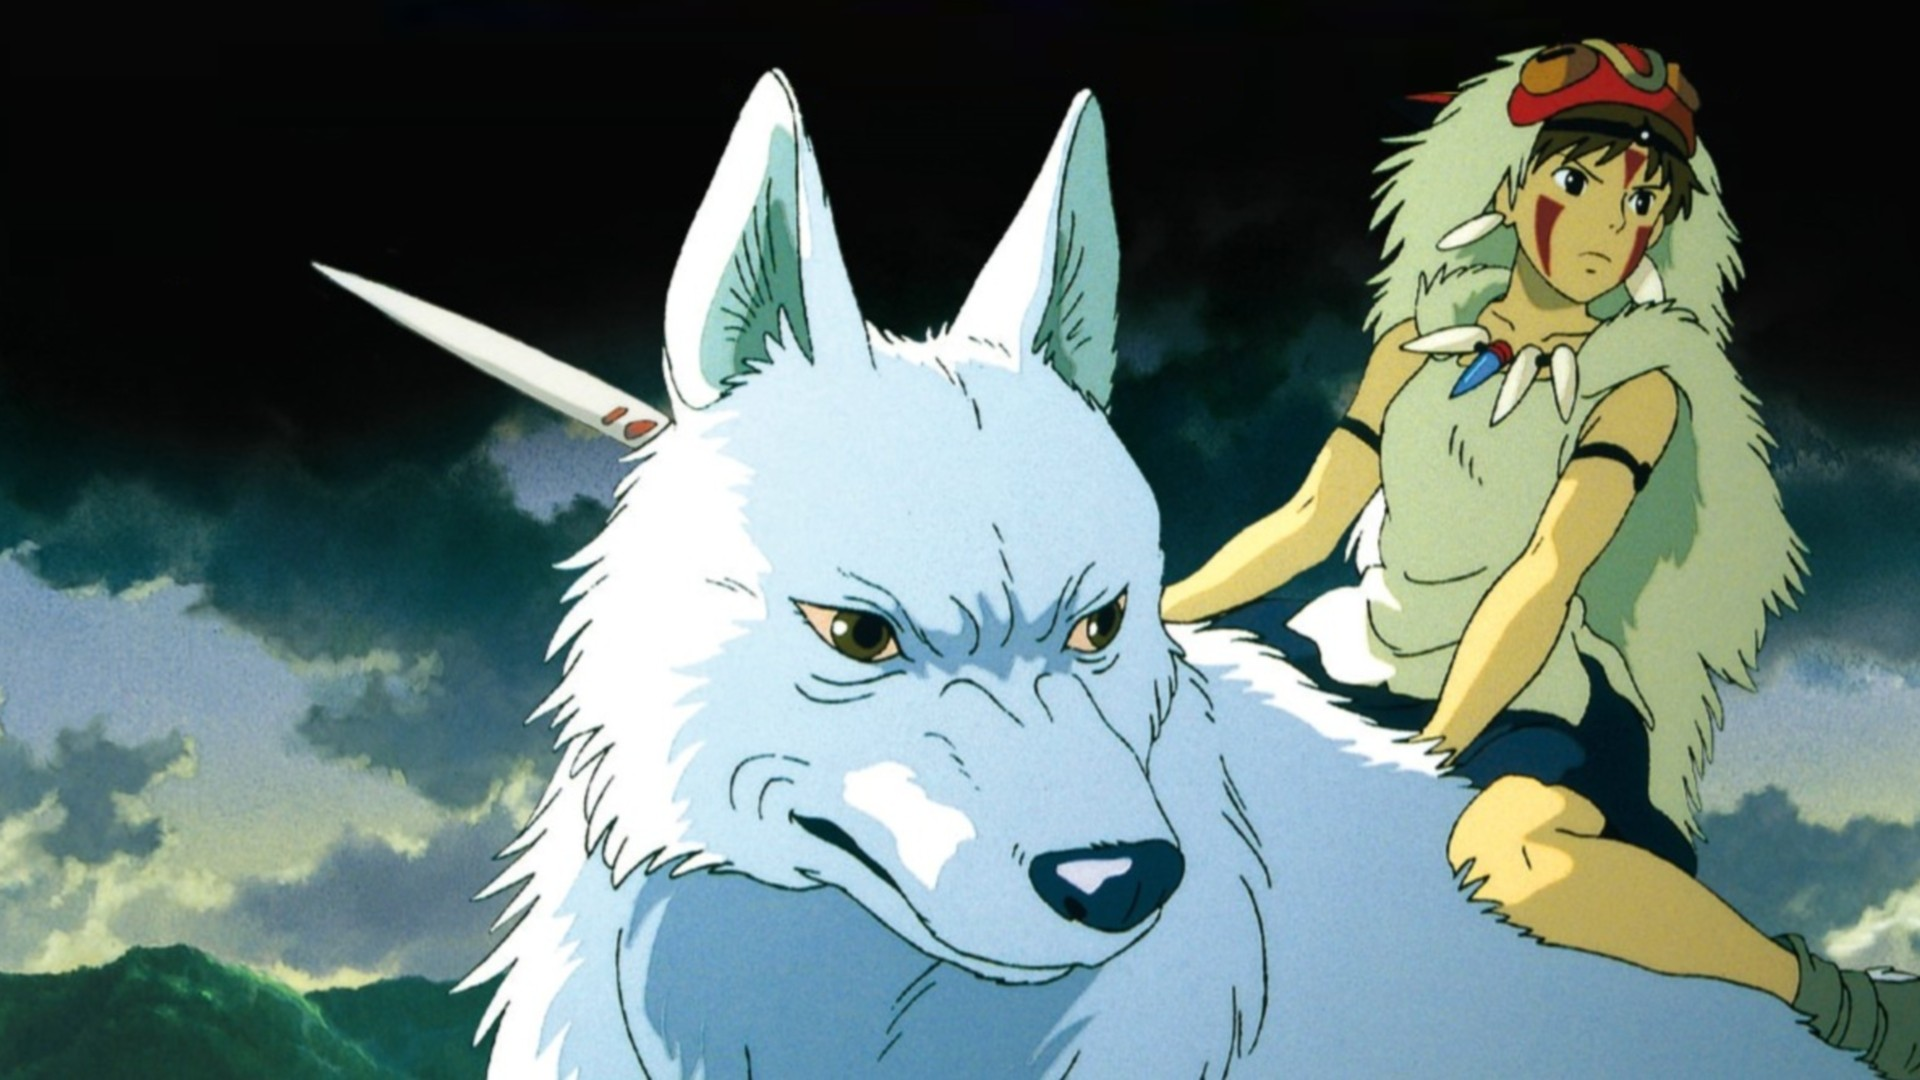 Studio Ghibli Princess Mononoke Anime Anime Girls Wallpaper Resolution 1920x1080 Id 636243 Wallha Com